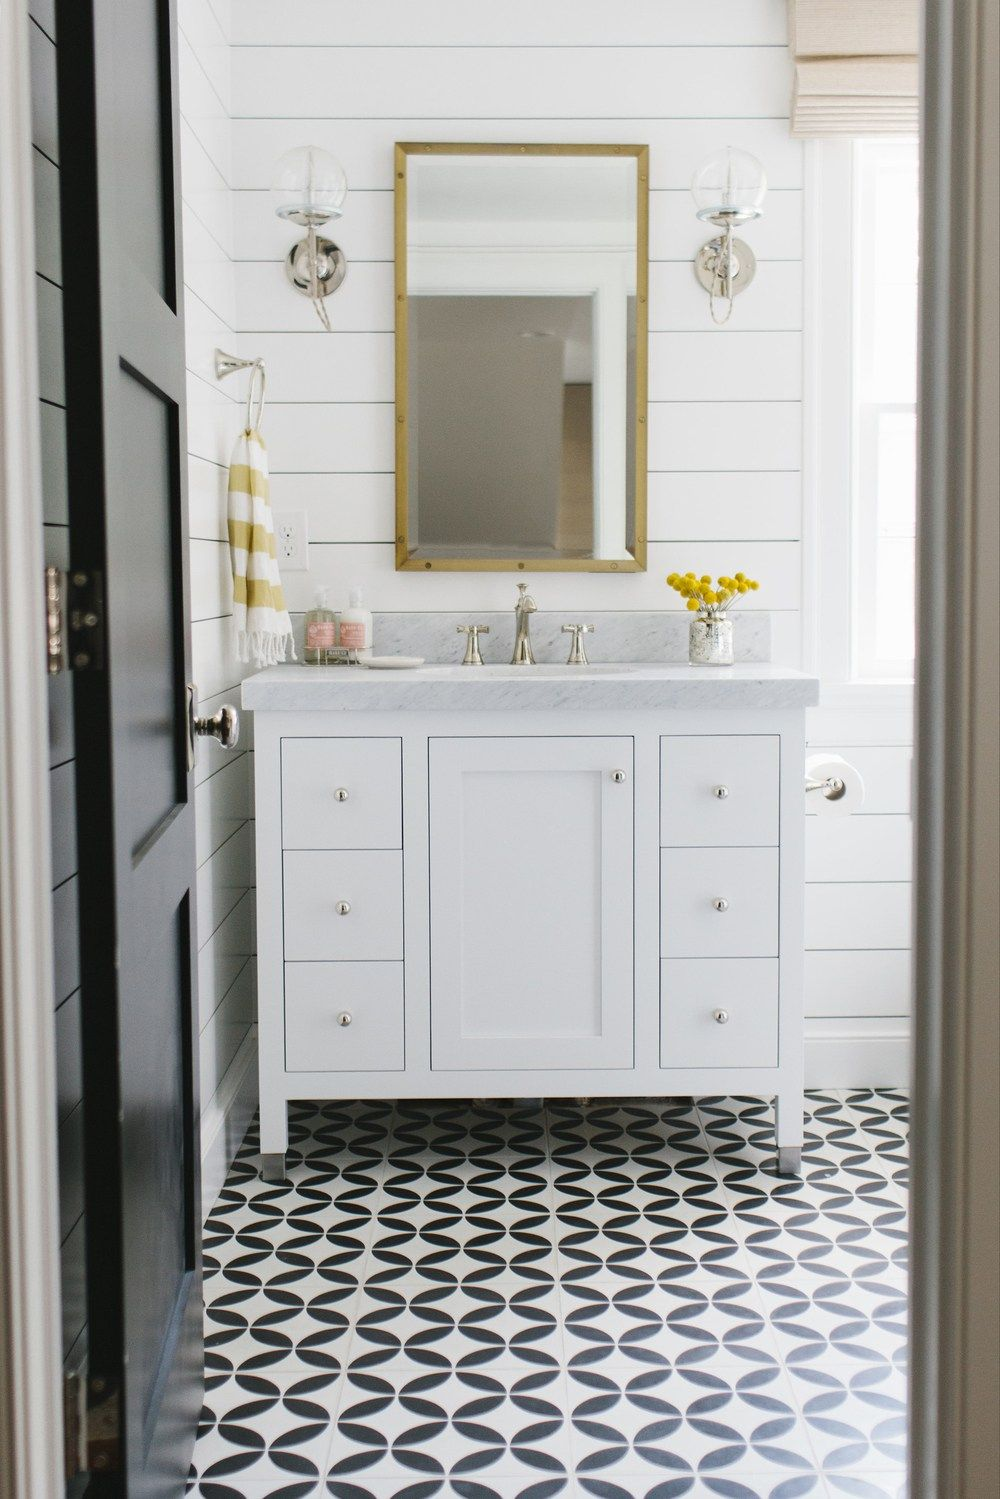 Black and White Tile Bathroom Floors | Studio mcgee, Cement and ...